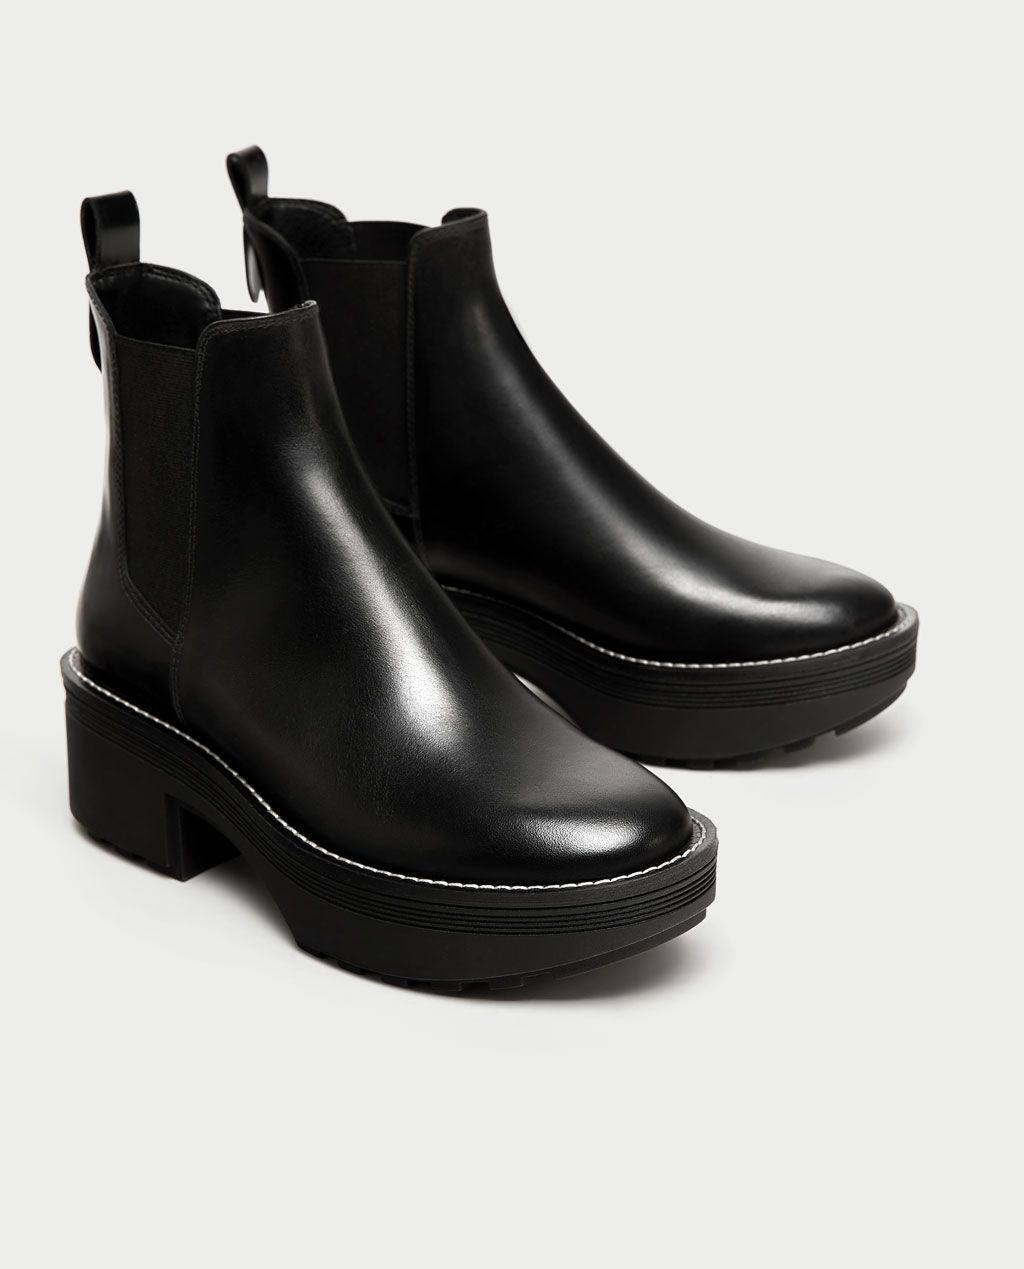 4fe9c81f Image 1 of FLAT LEATHER ANKLE BOOTS WITH TRACK SOLE from Zara | The ...